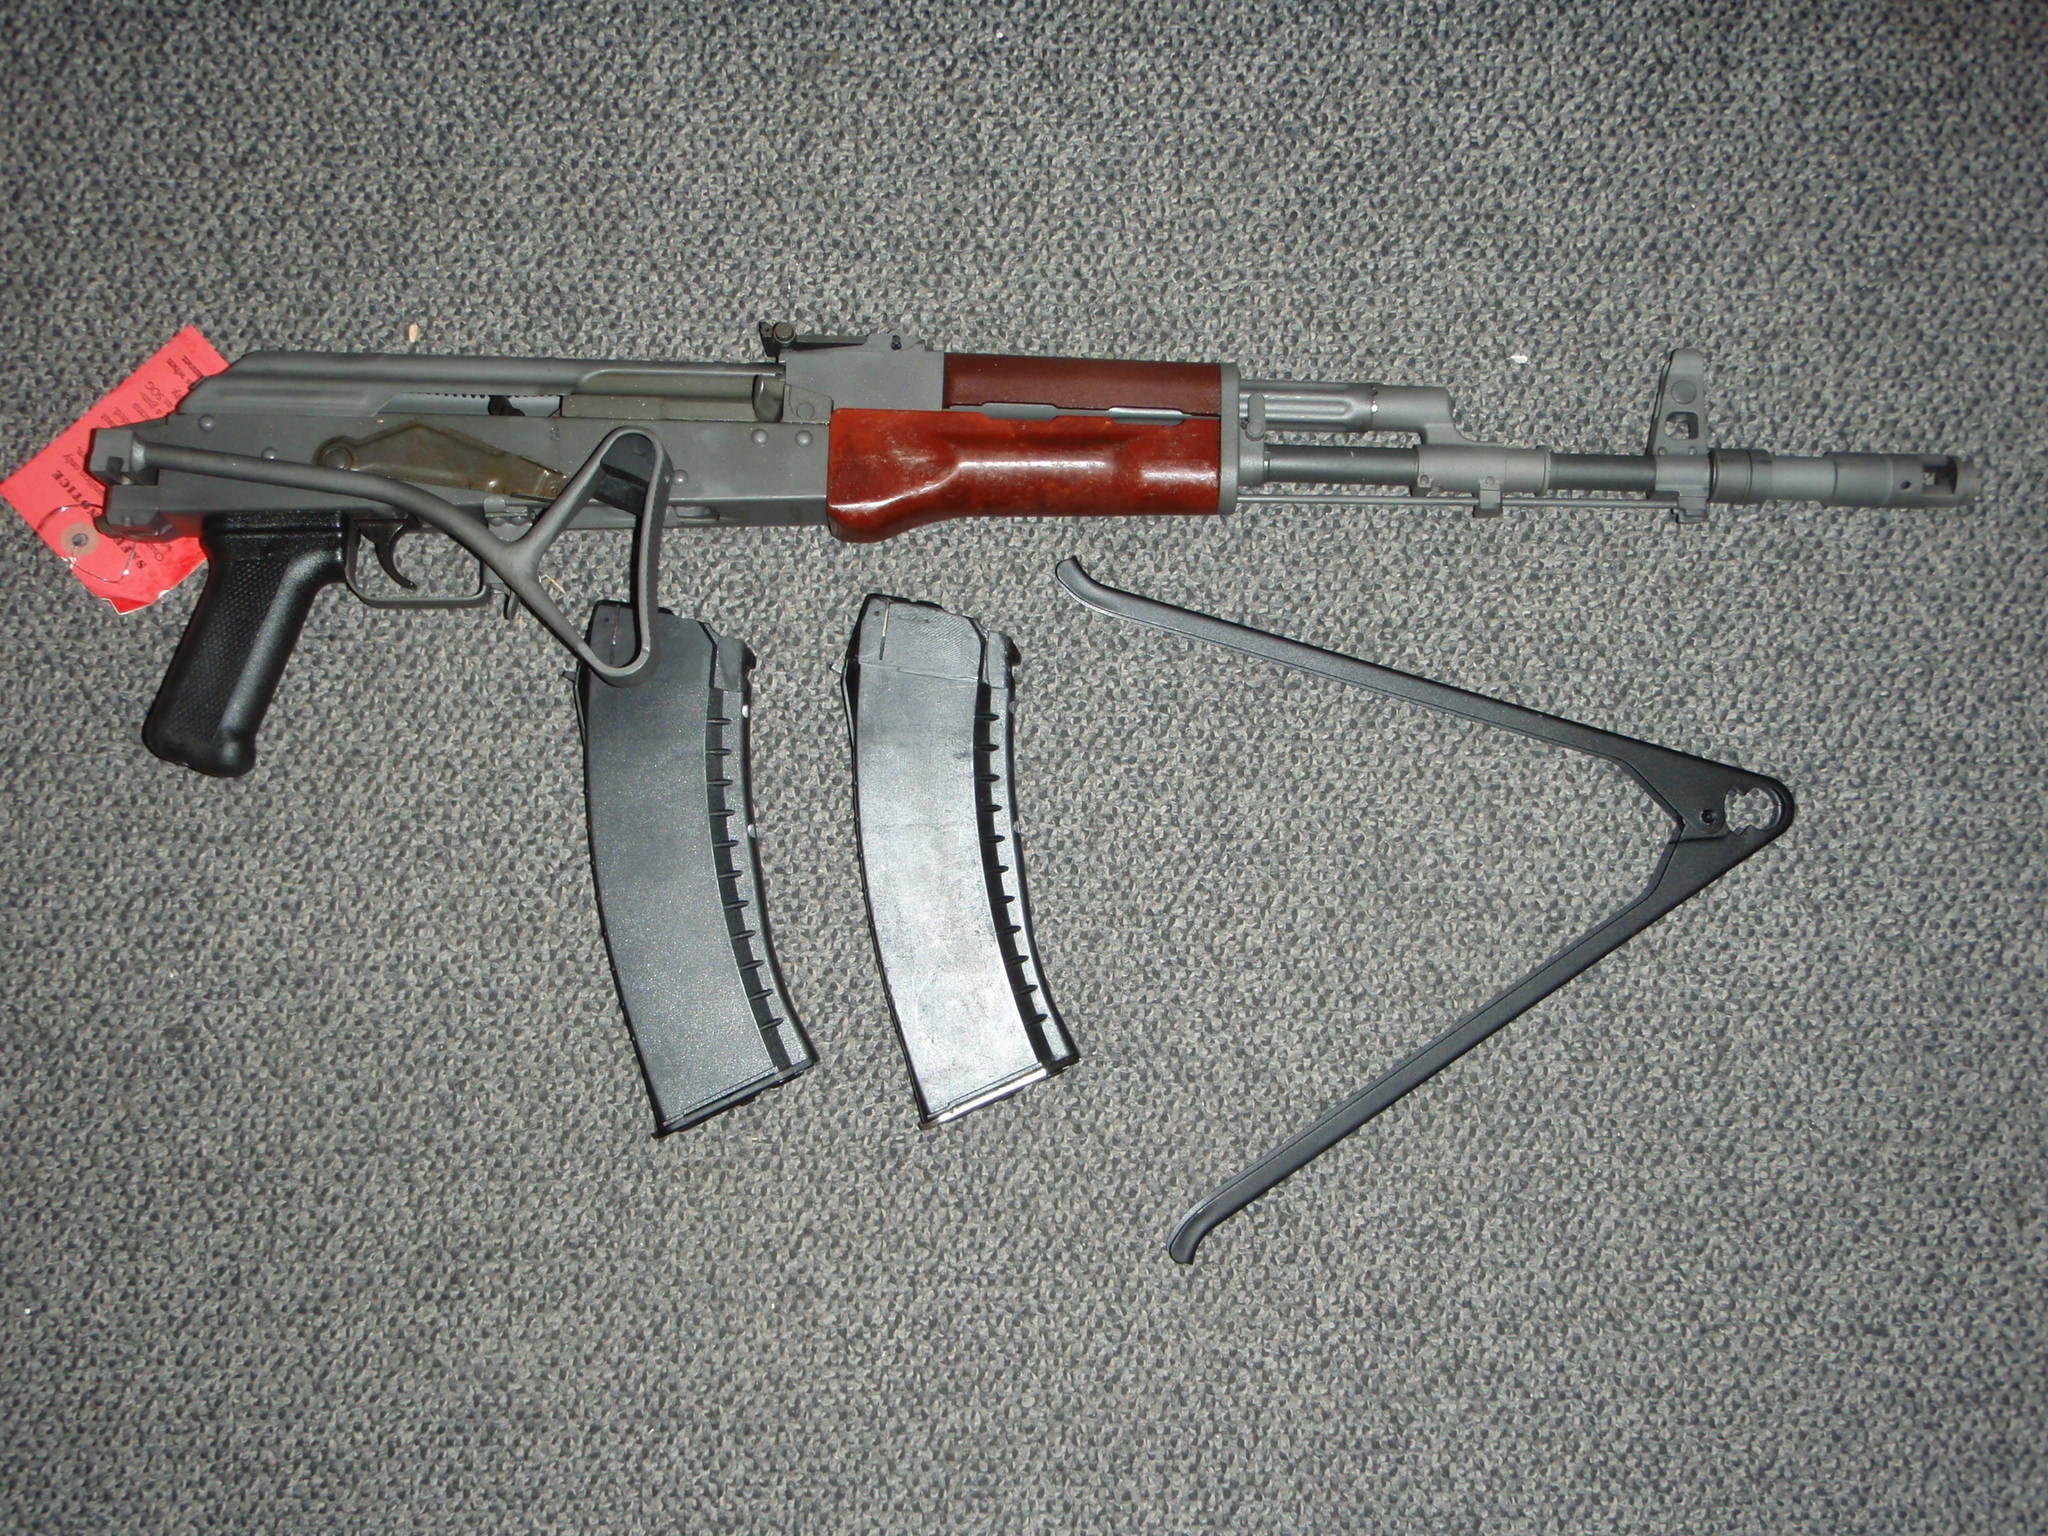 Polish Tantal AK 5.45X39 Rifle